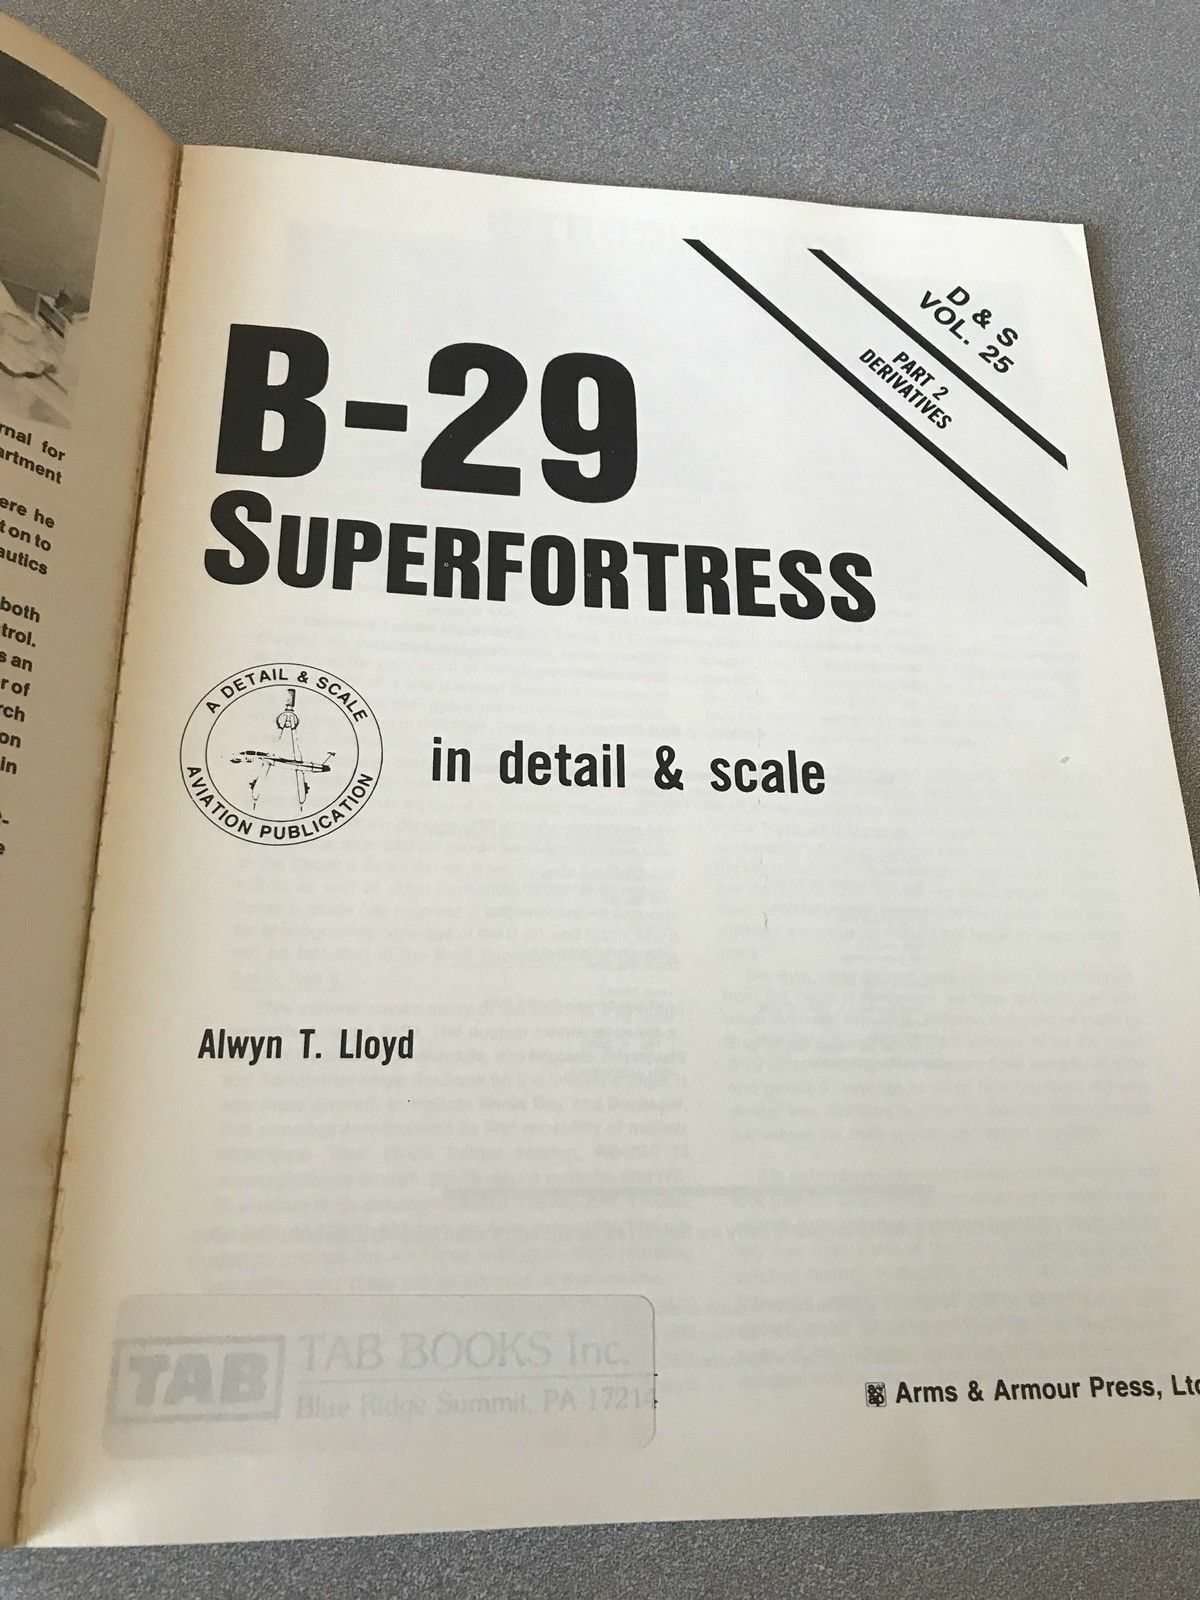 B-29 SUPERFORTRESS PART TWO -SQUADRON SIGNAL IN DETAIL DETAIL DETAIL & SCALE & DERIVATE VOL.25 7d4f09